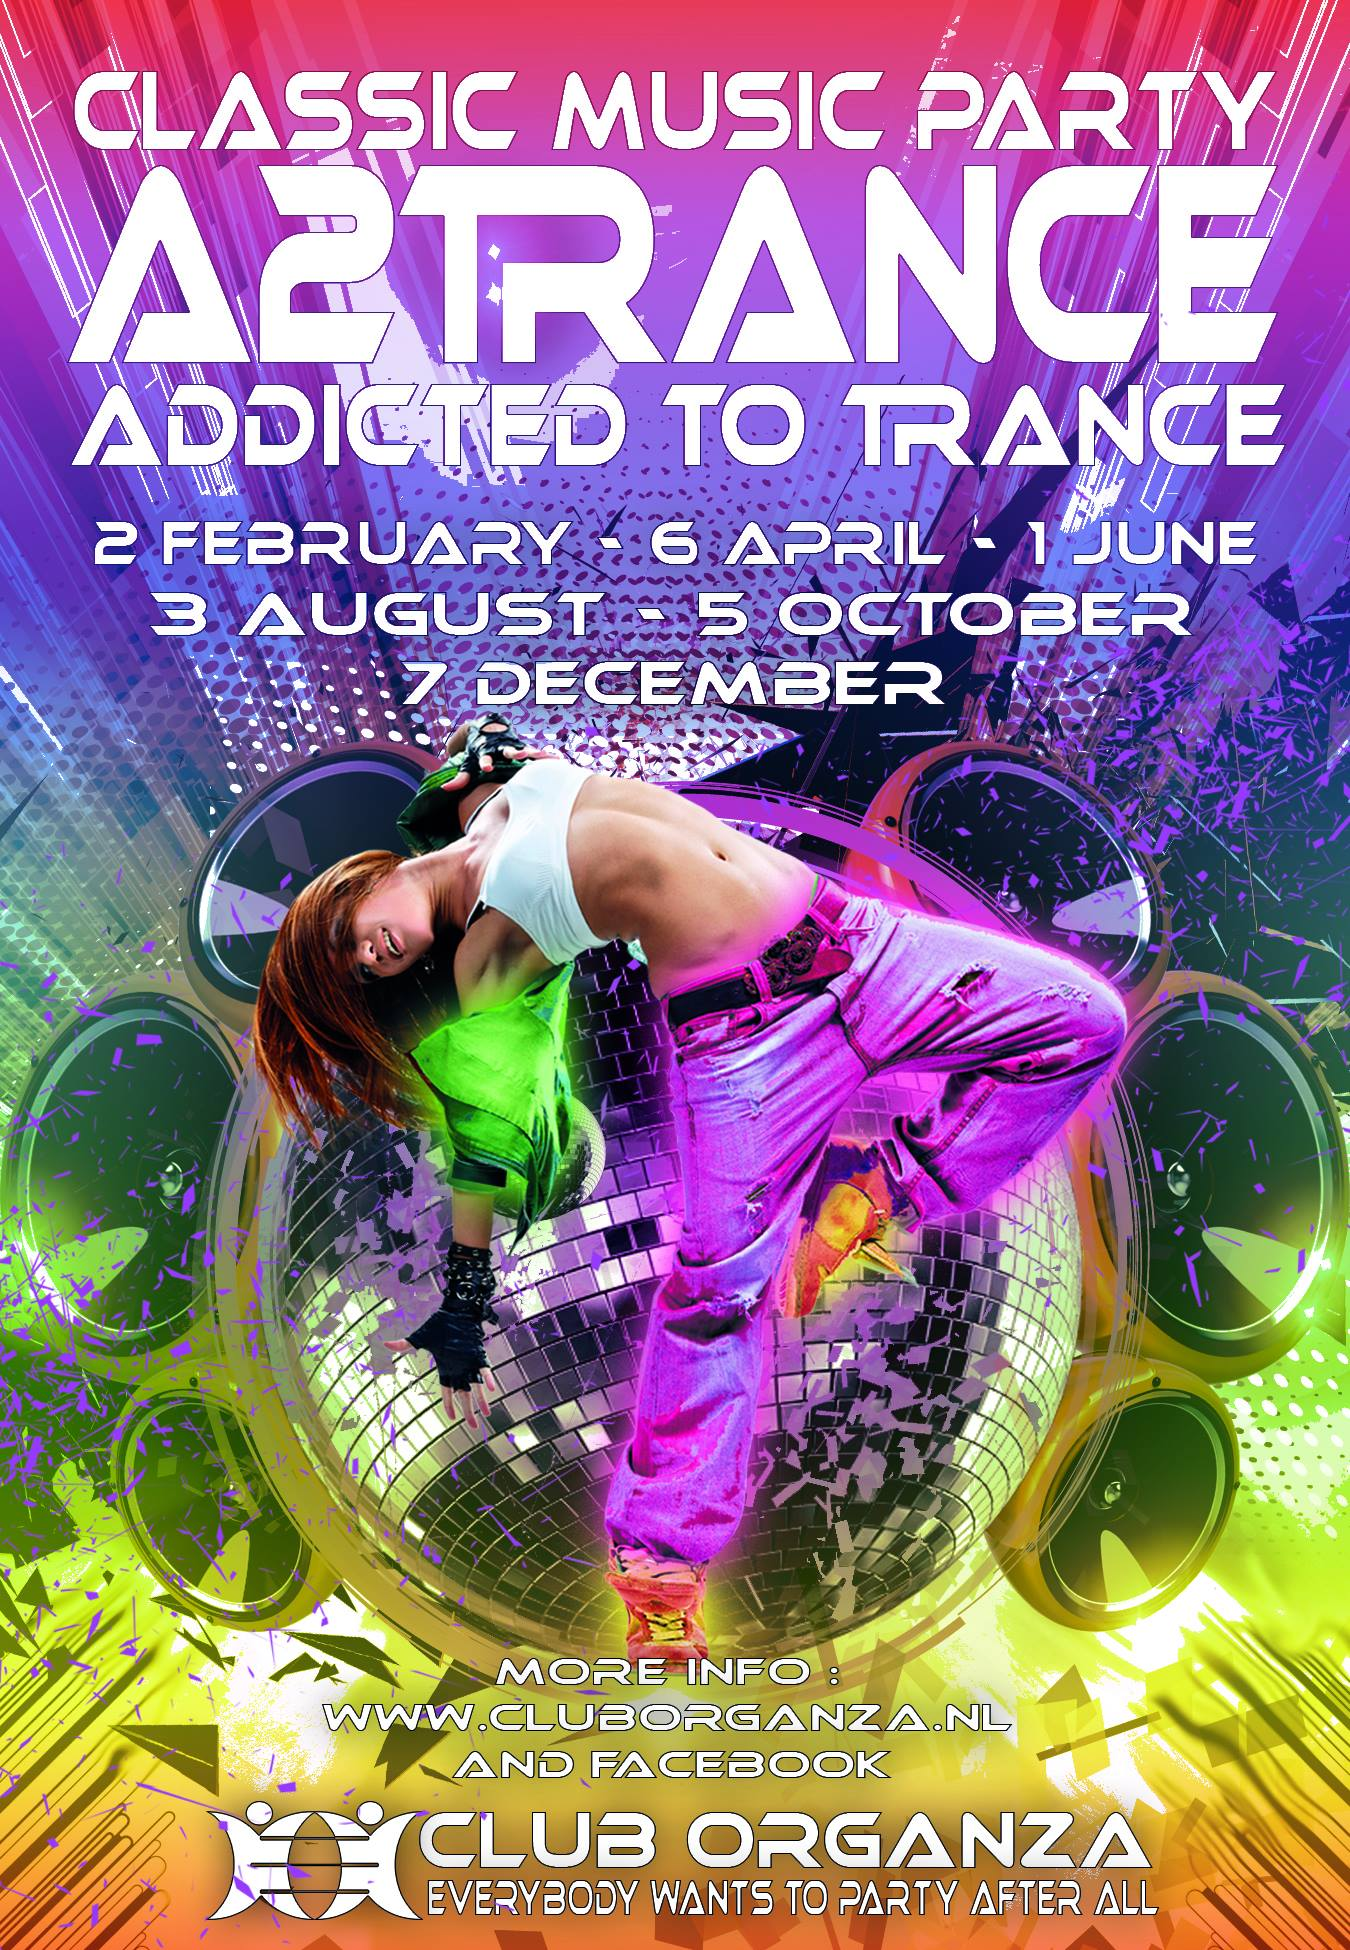 A2Trance...Addicted to Trance